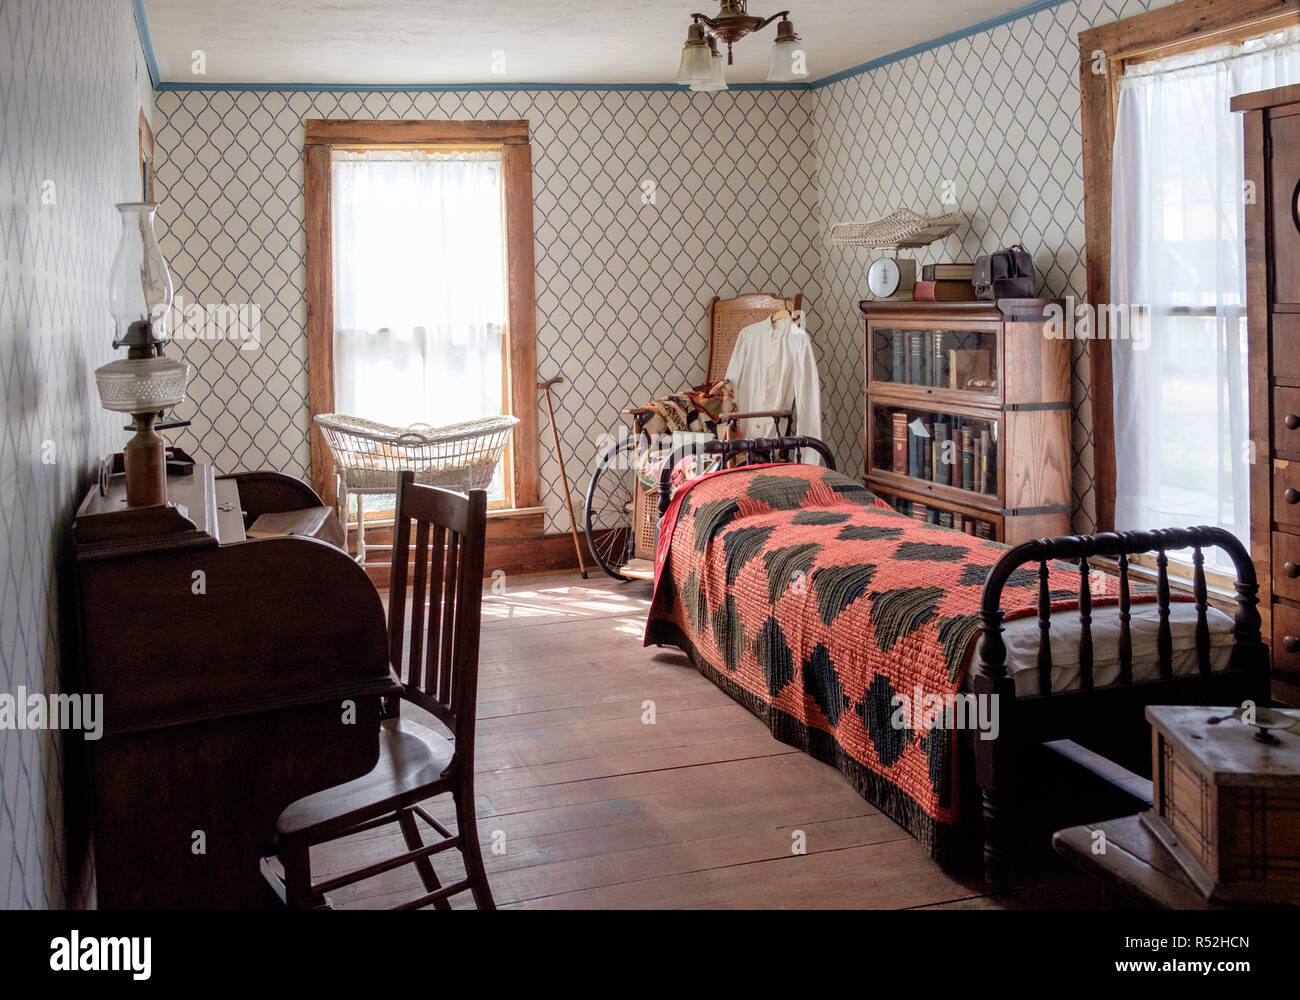 Super Vintage Texan Bedroom Interior With Bed Rocking Chair Roll Andrewgaddart Wooden Chair Designs For Living Room Andrewgaddartcom